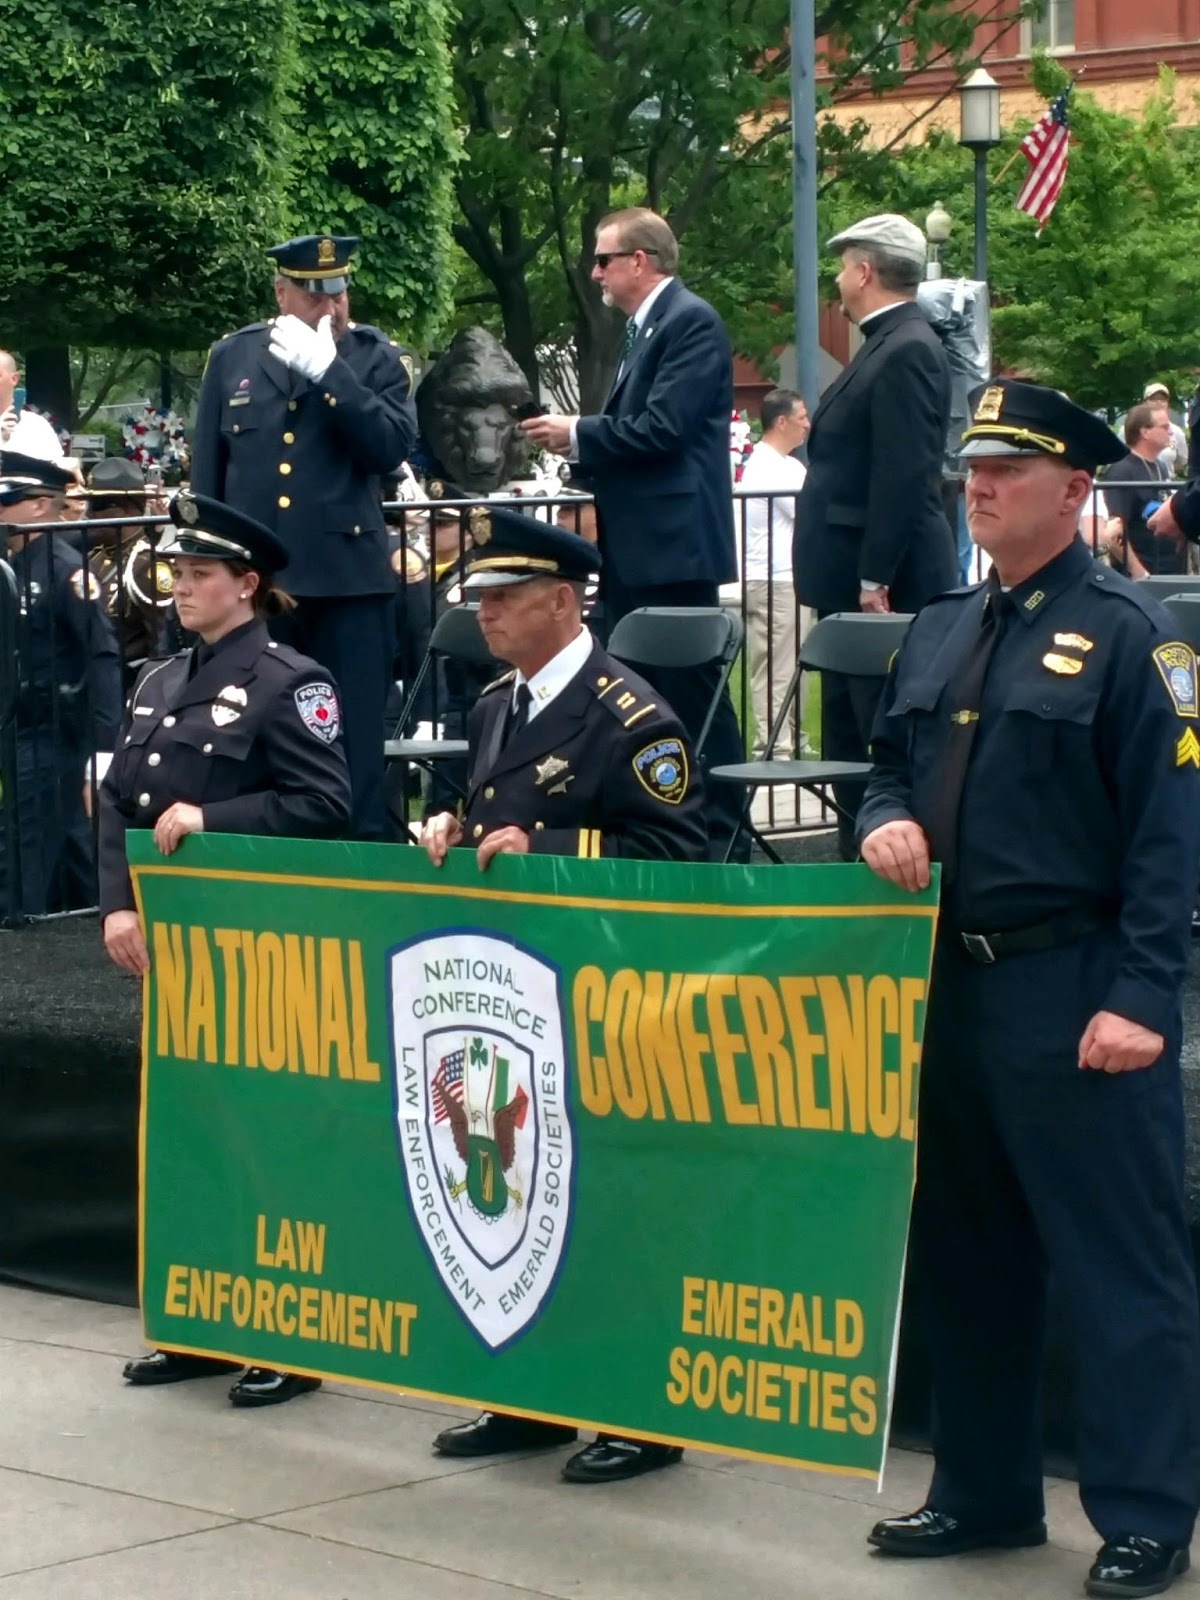 Emerald Society Of The Boston Police Page 2 Pride In Our Heritage